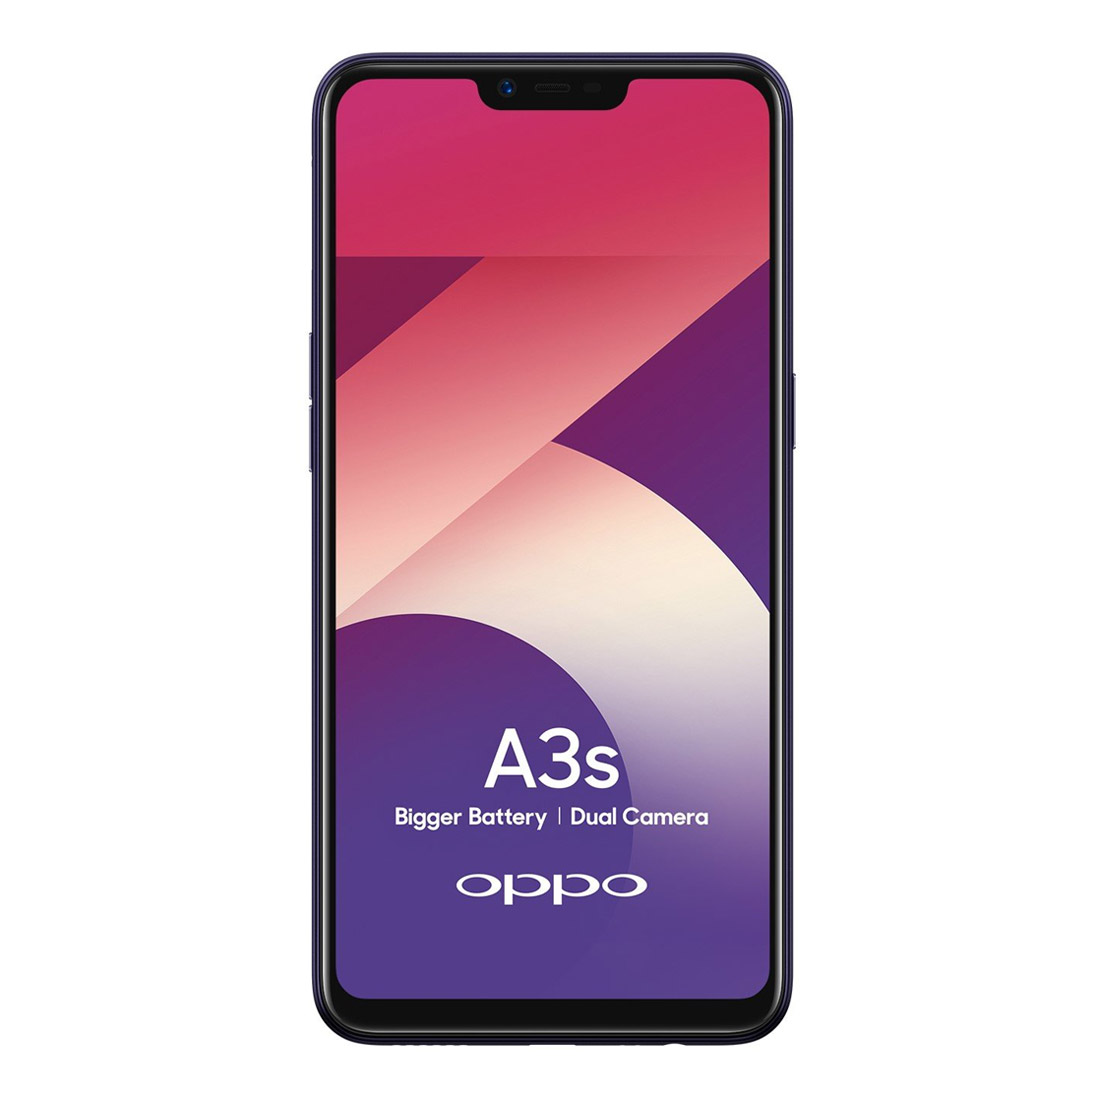 [CPO - As New] OPPO A3s (Dual Sim 4G/3G) - Purple